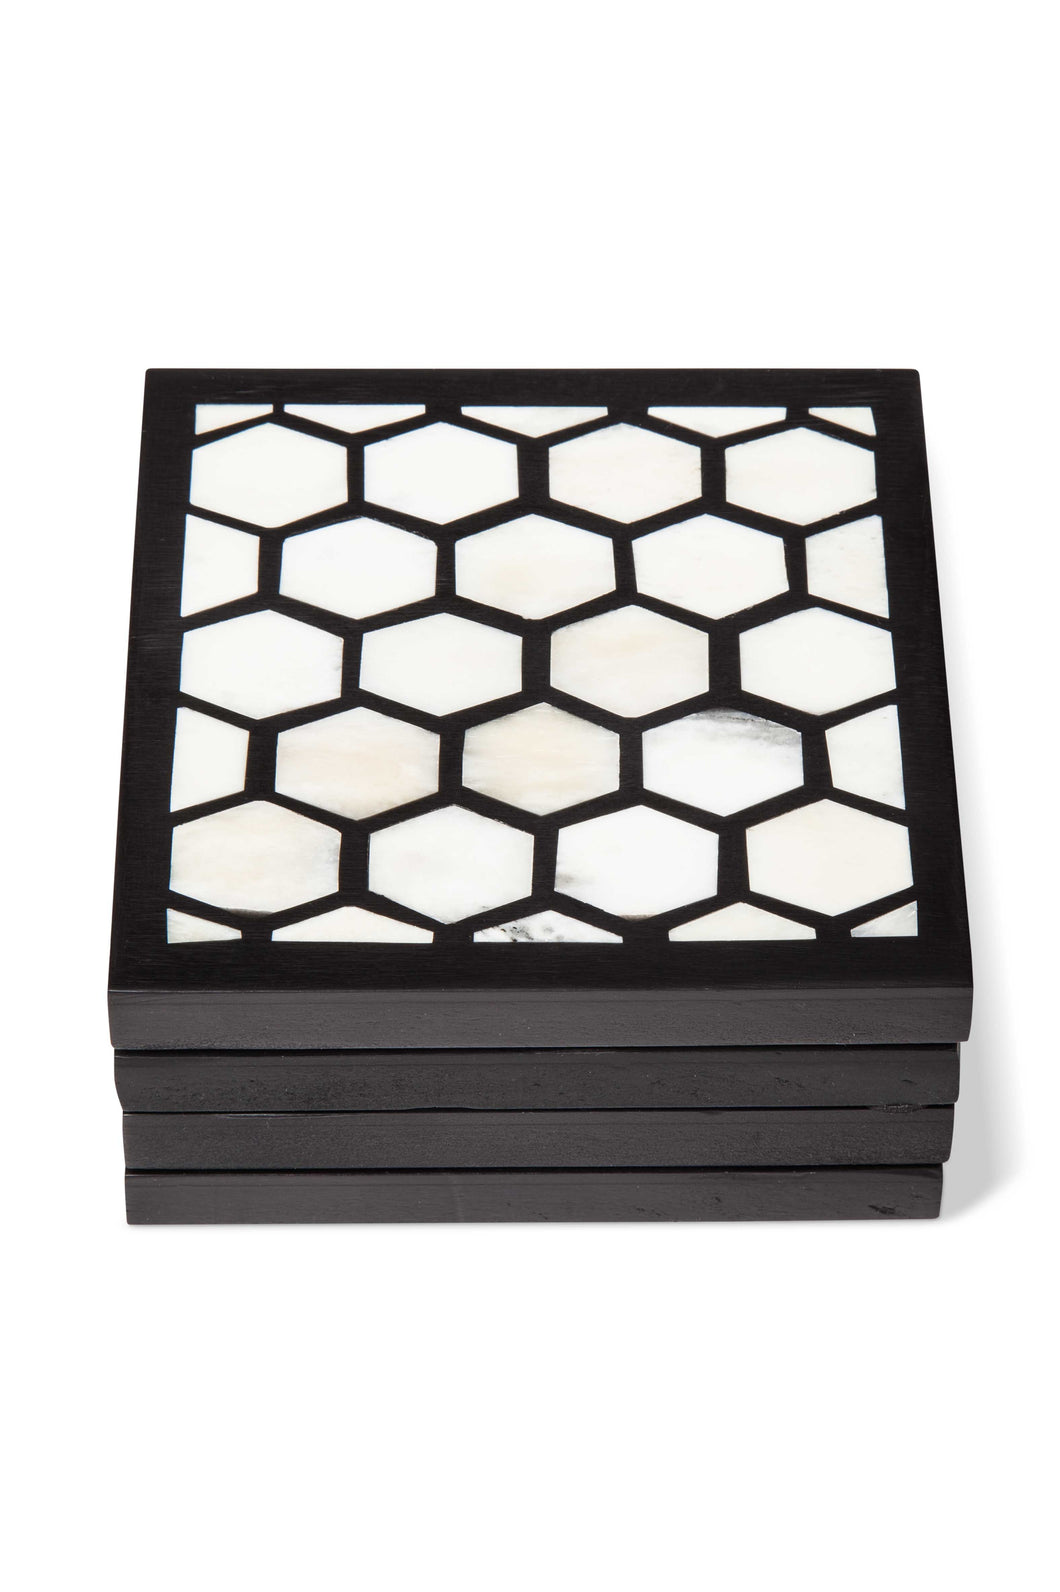 B&W Inlaid Coasters (Set of 4)